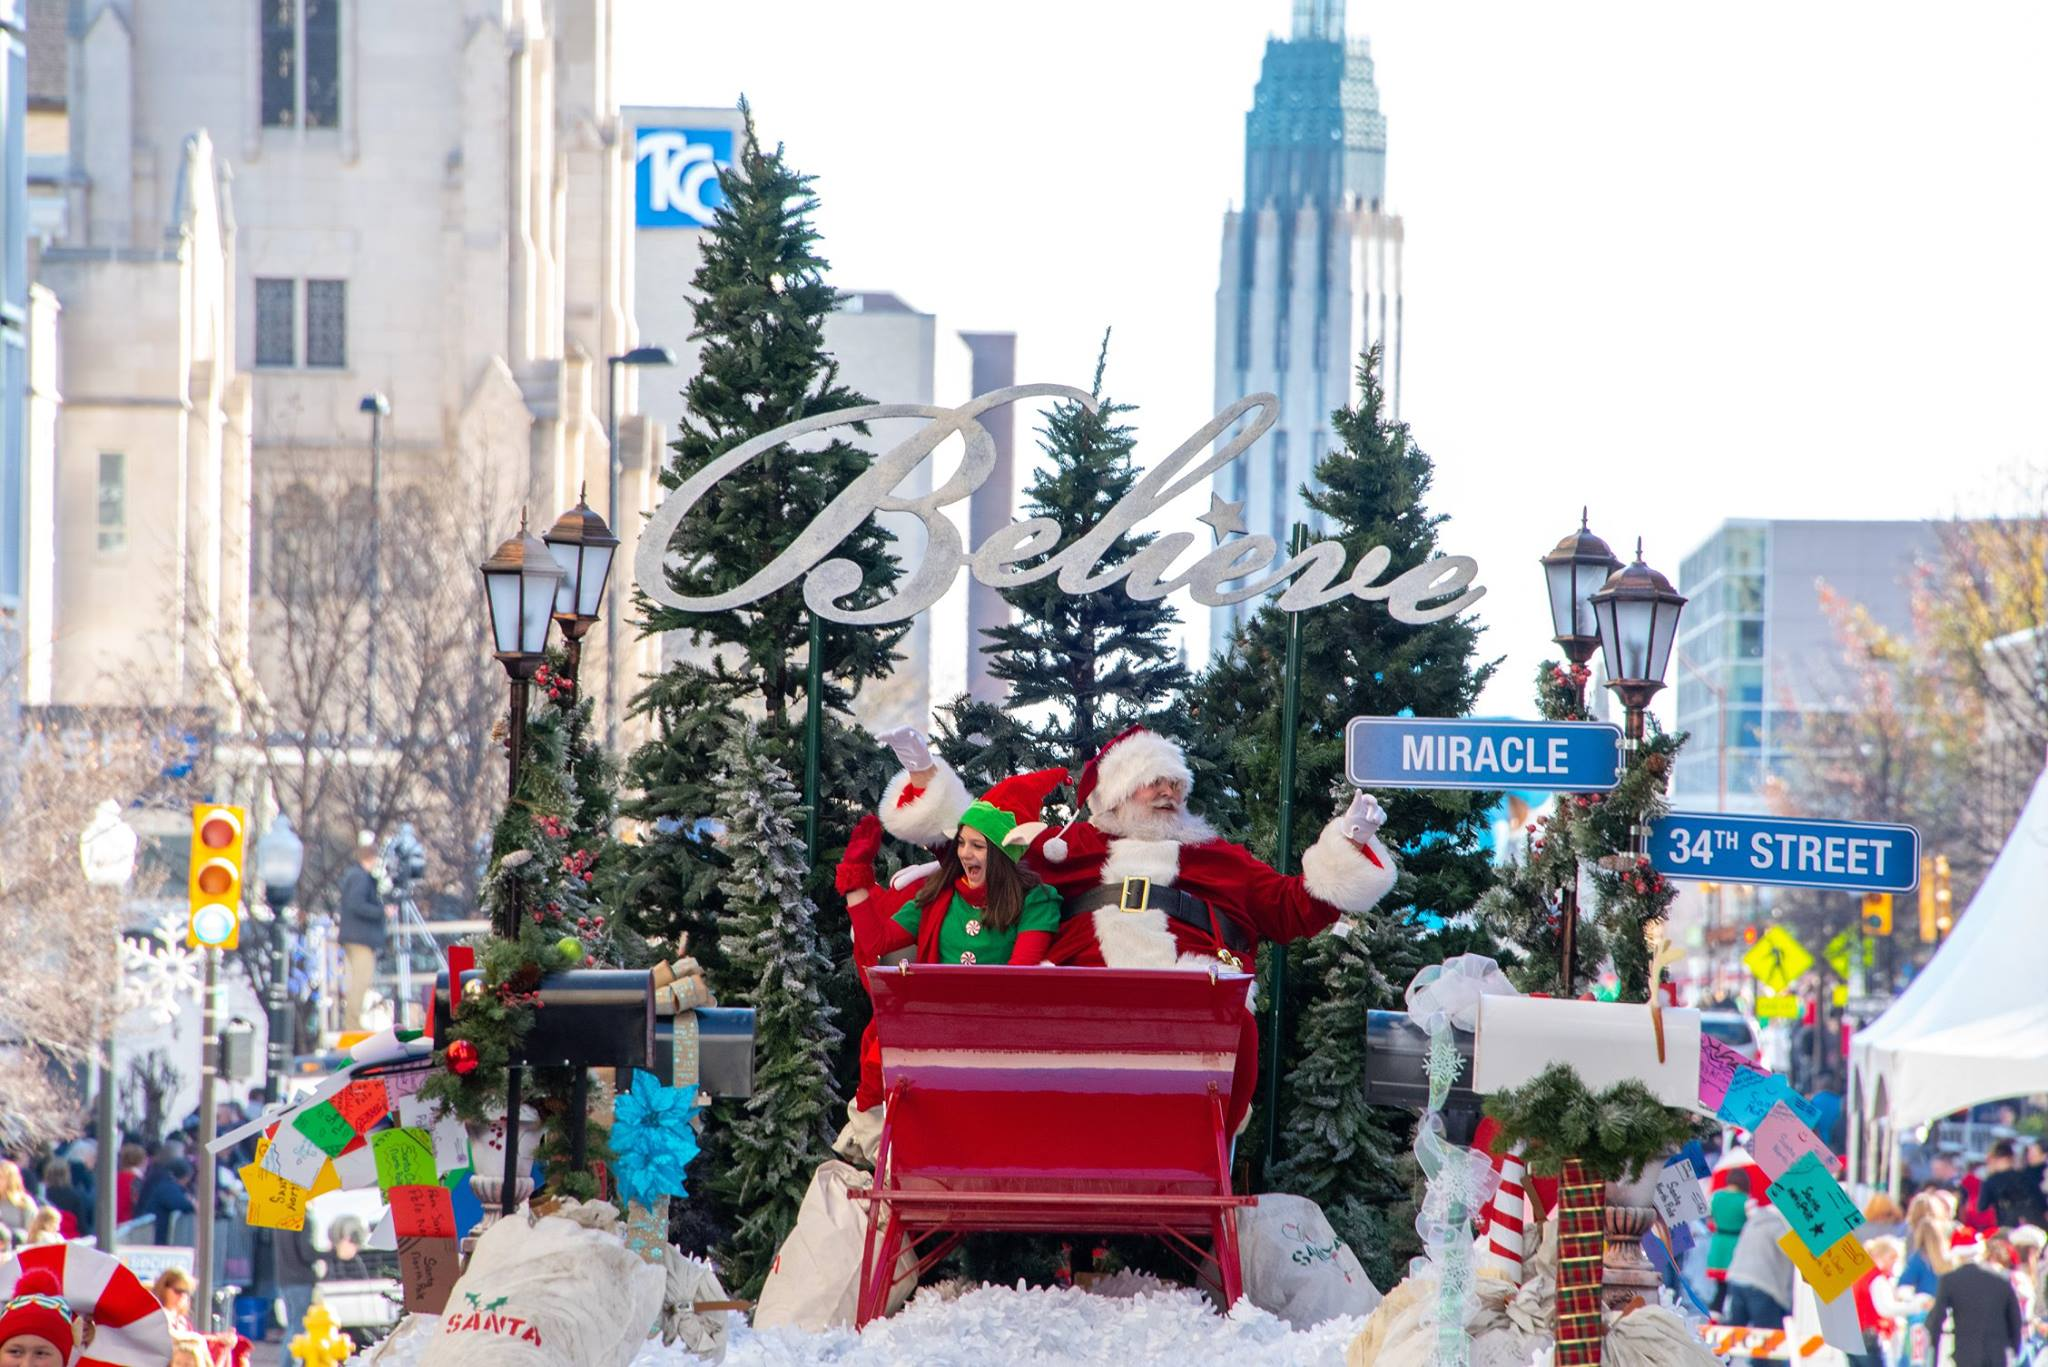 Christmas Events Tulsa 2020 Tulsa Makes Plans for 2020 Christmas Parade – Aussie Journal